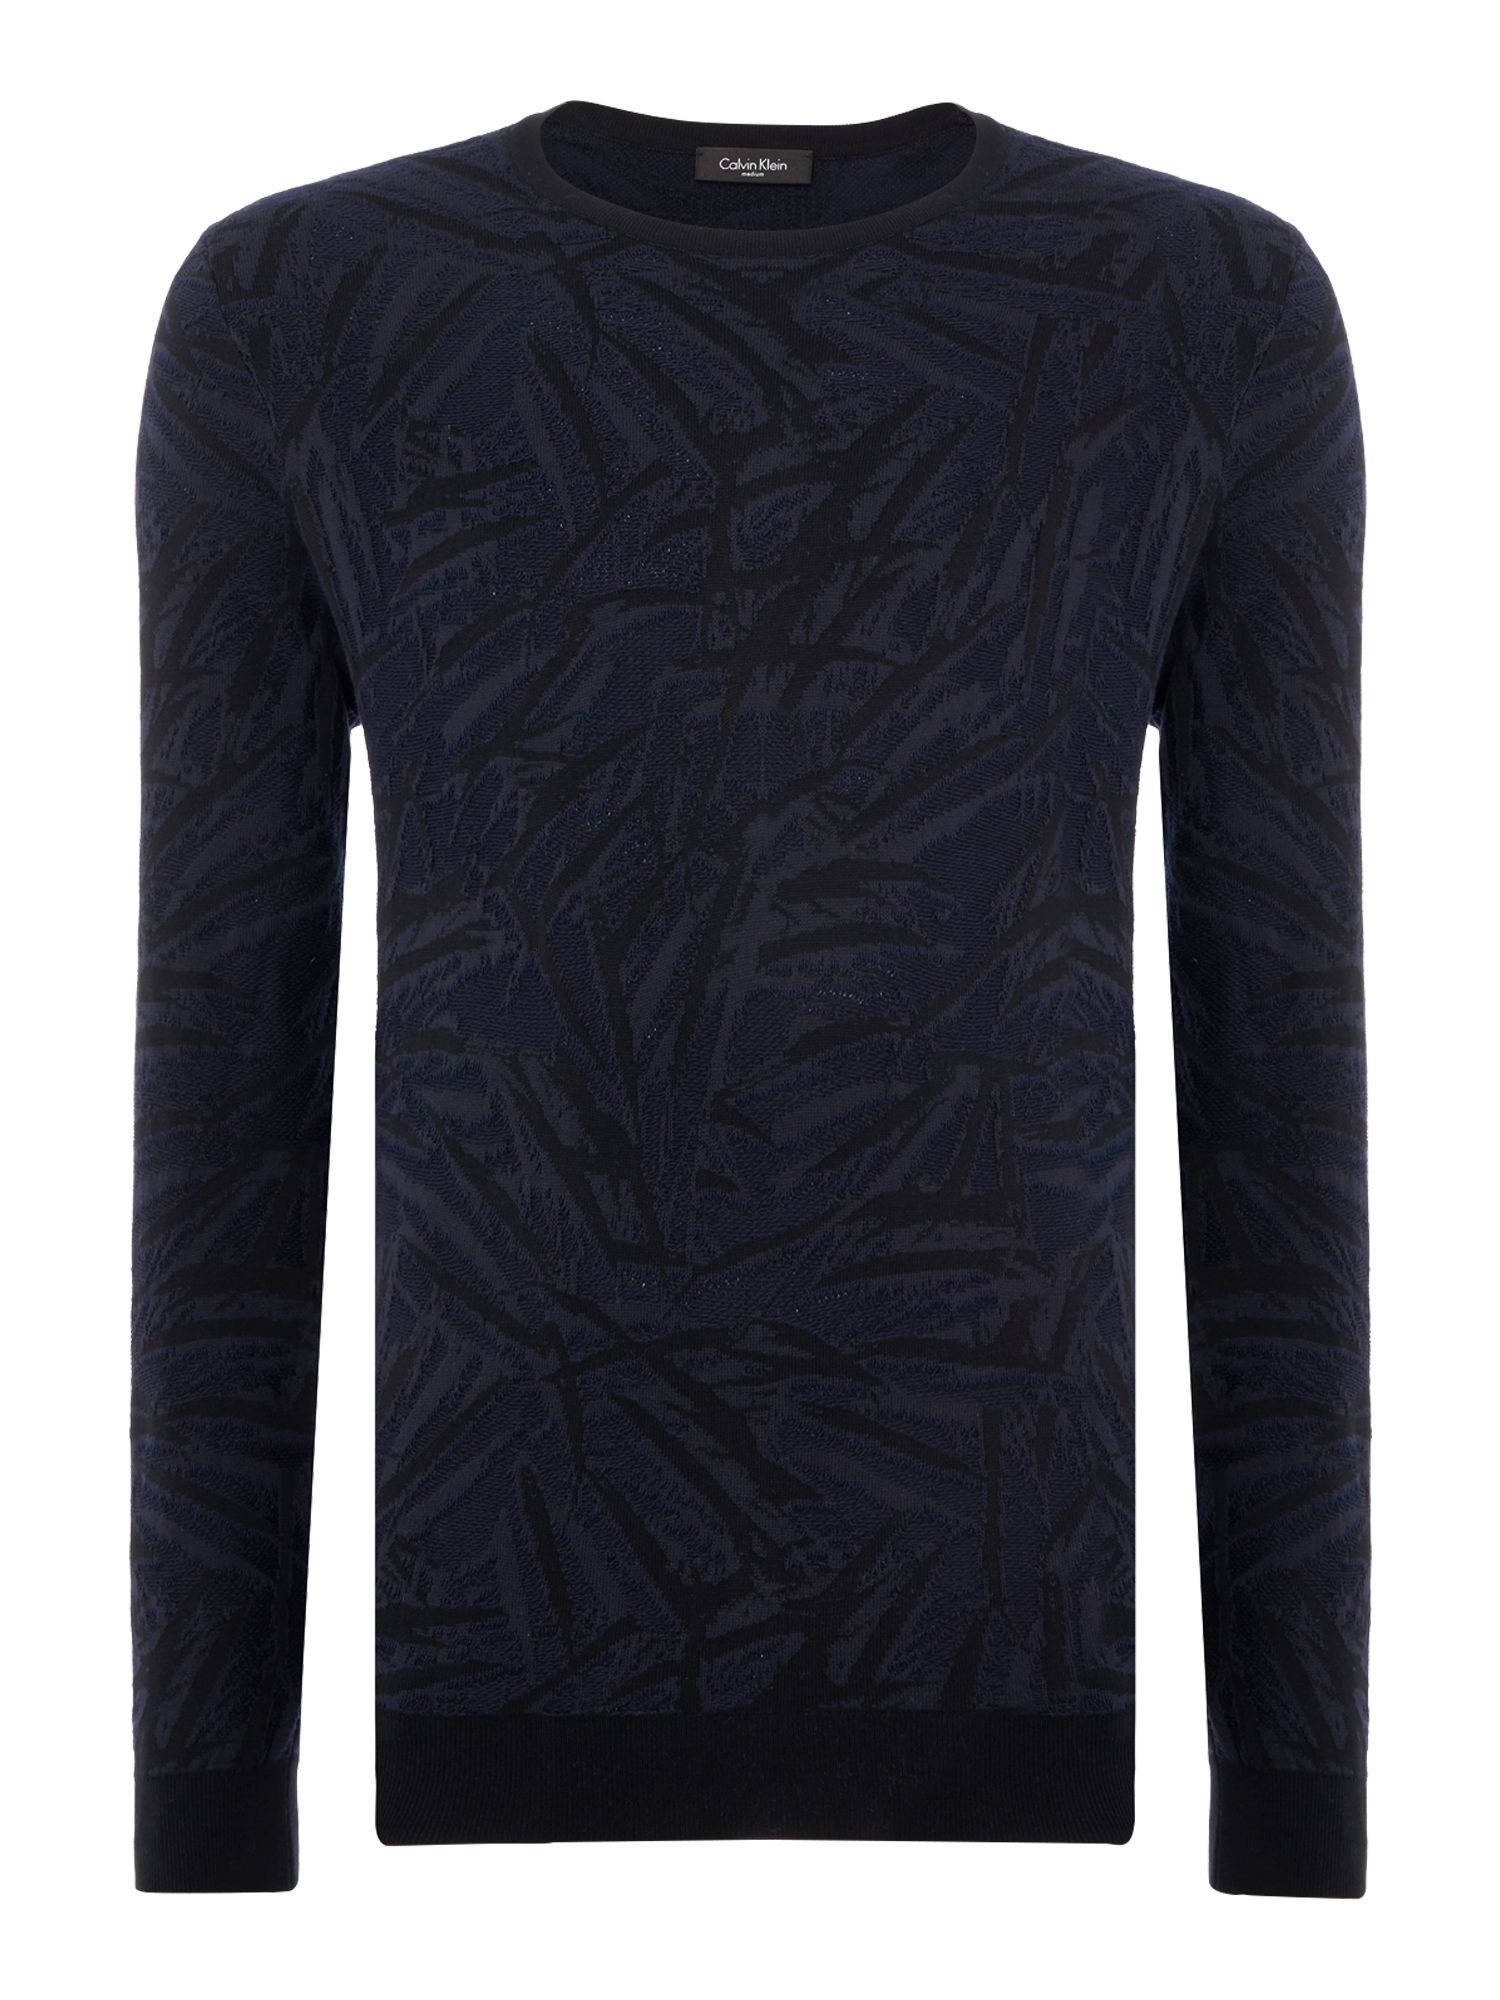 Men's Calvin Klein Sapak Leaf Sweater, Black